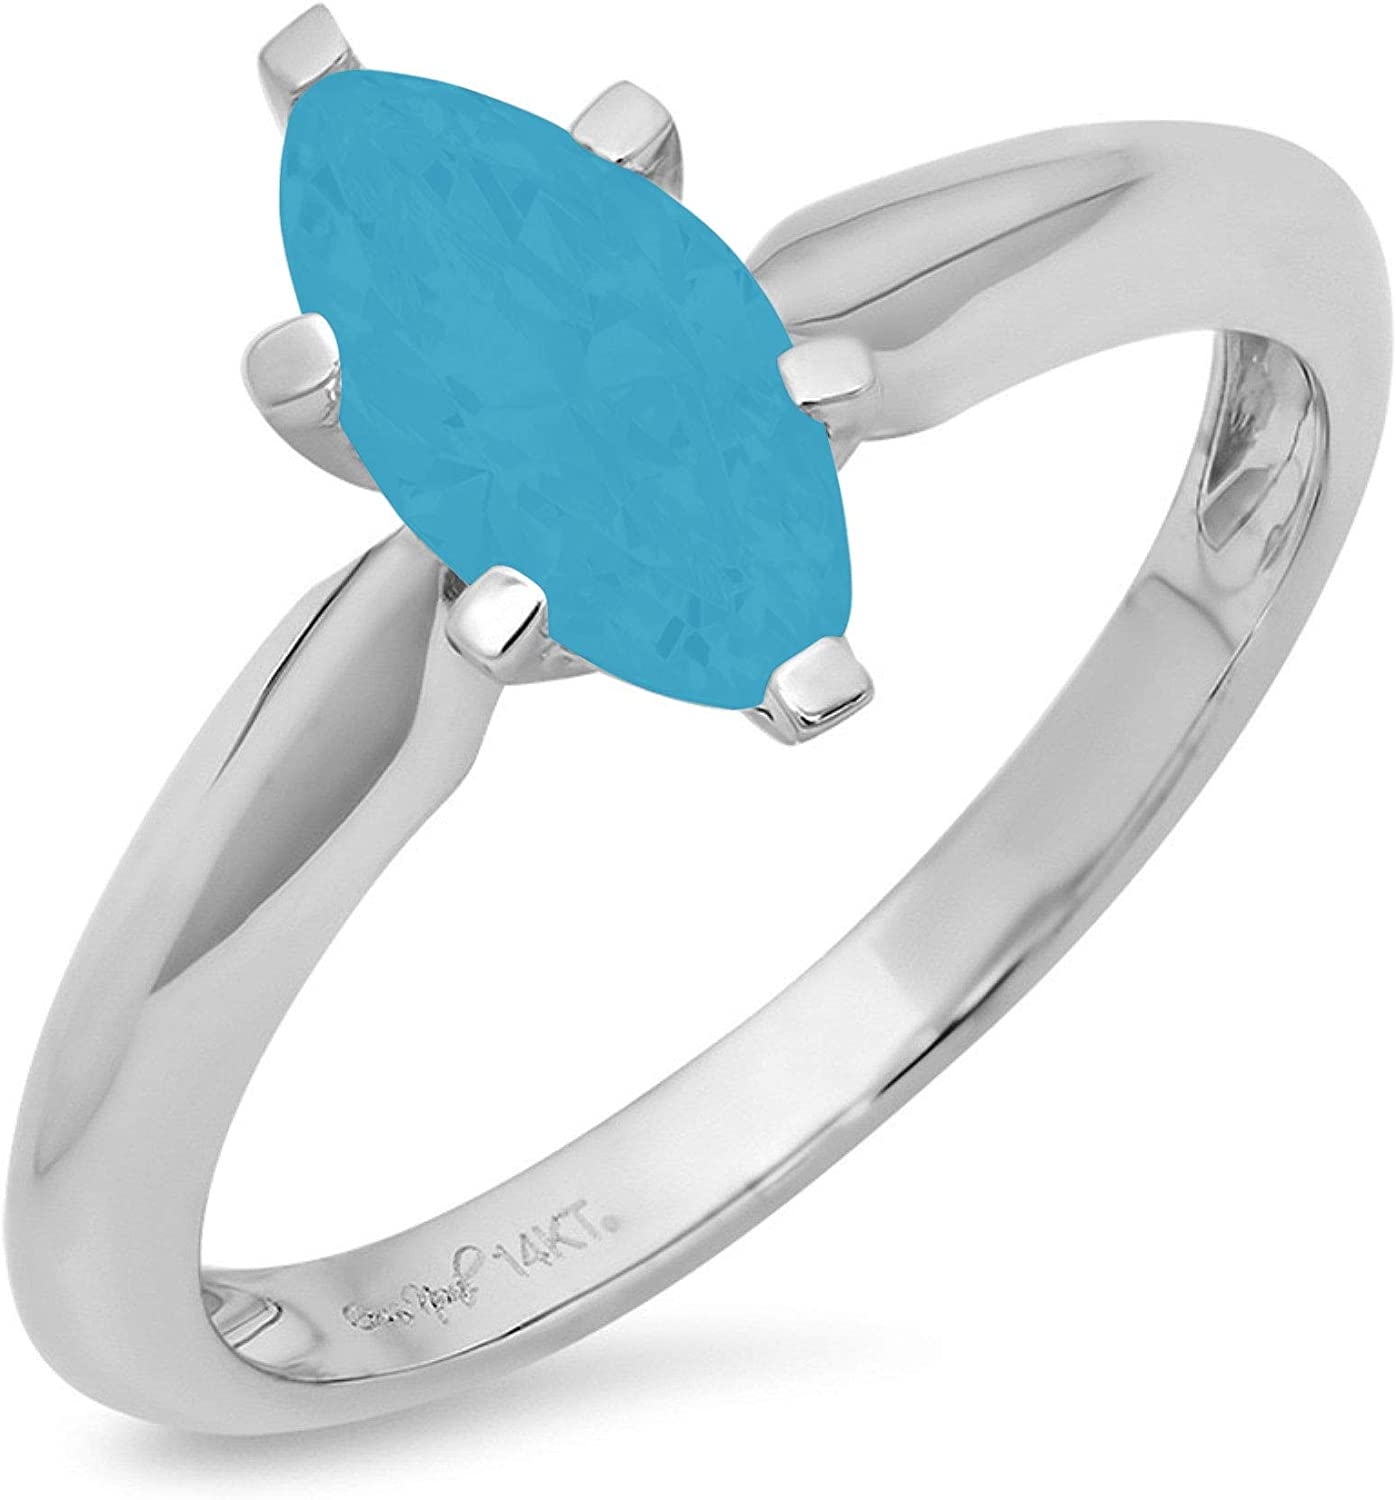 1.4ct Brilliant Marquise Cut Solitaire Flawless Simulated Cubic Zirconia Blue Turquoise Ideal 6-Prong Engagement Wedding Bridal Promise Anniversary Designer Ring Solid 14k White Gold for Women